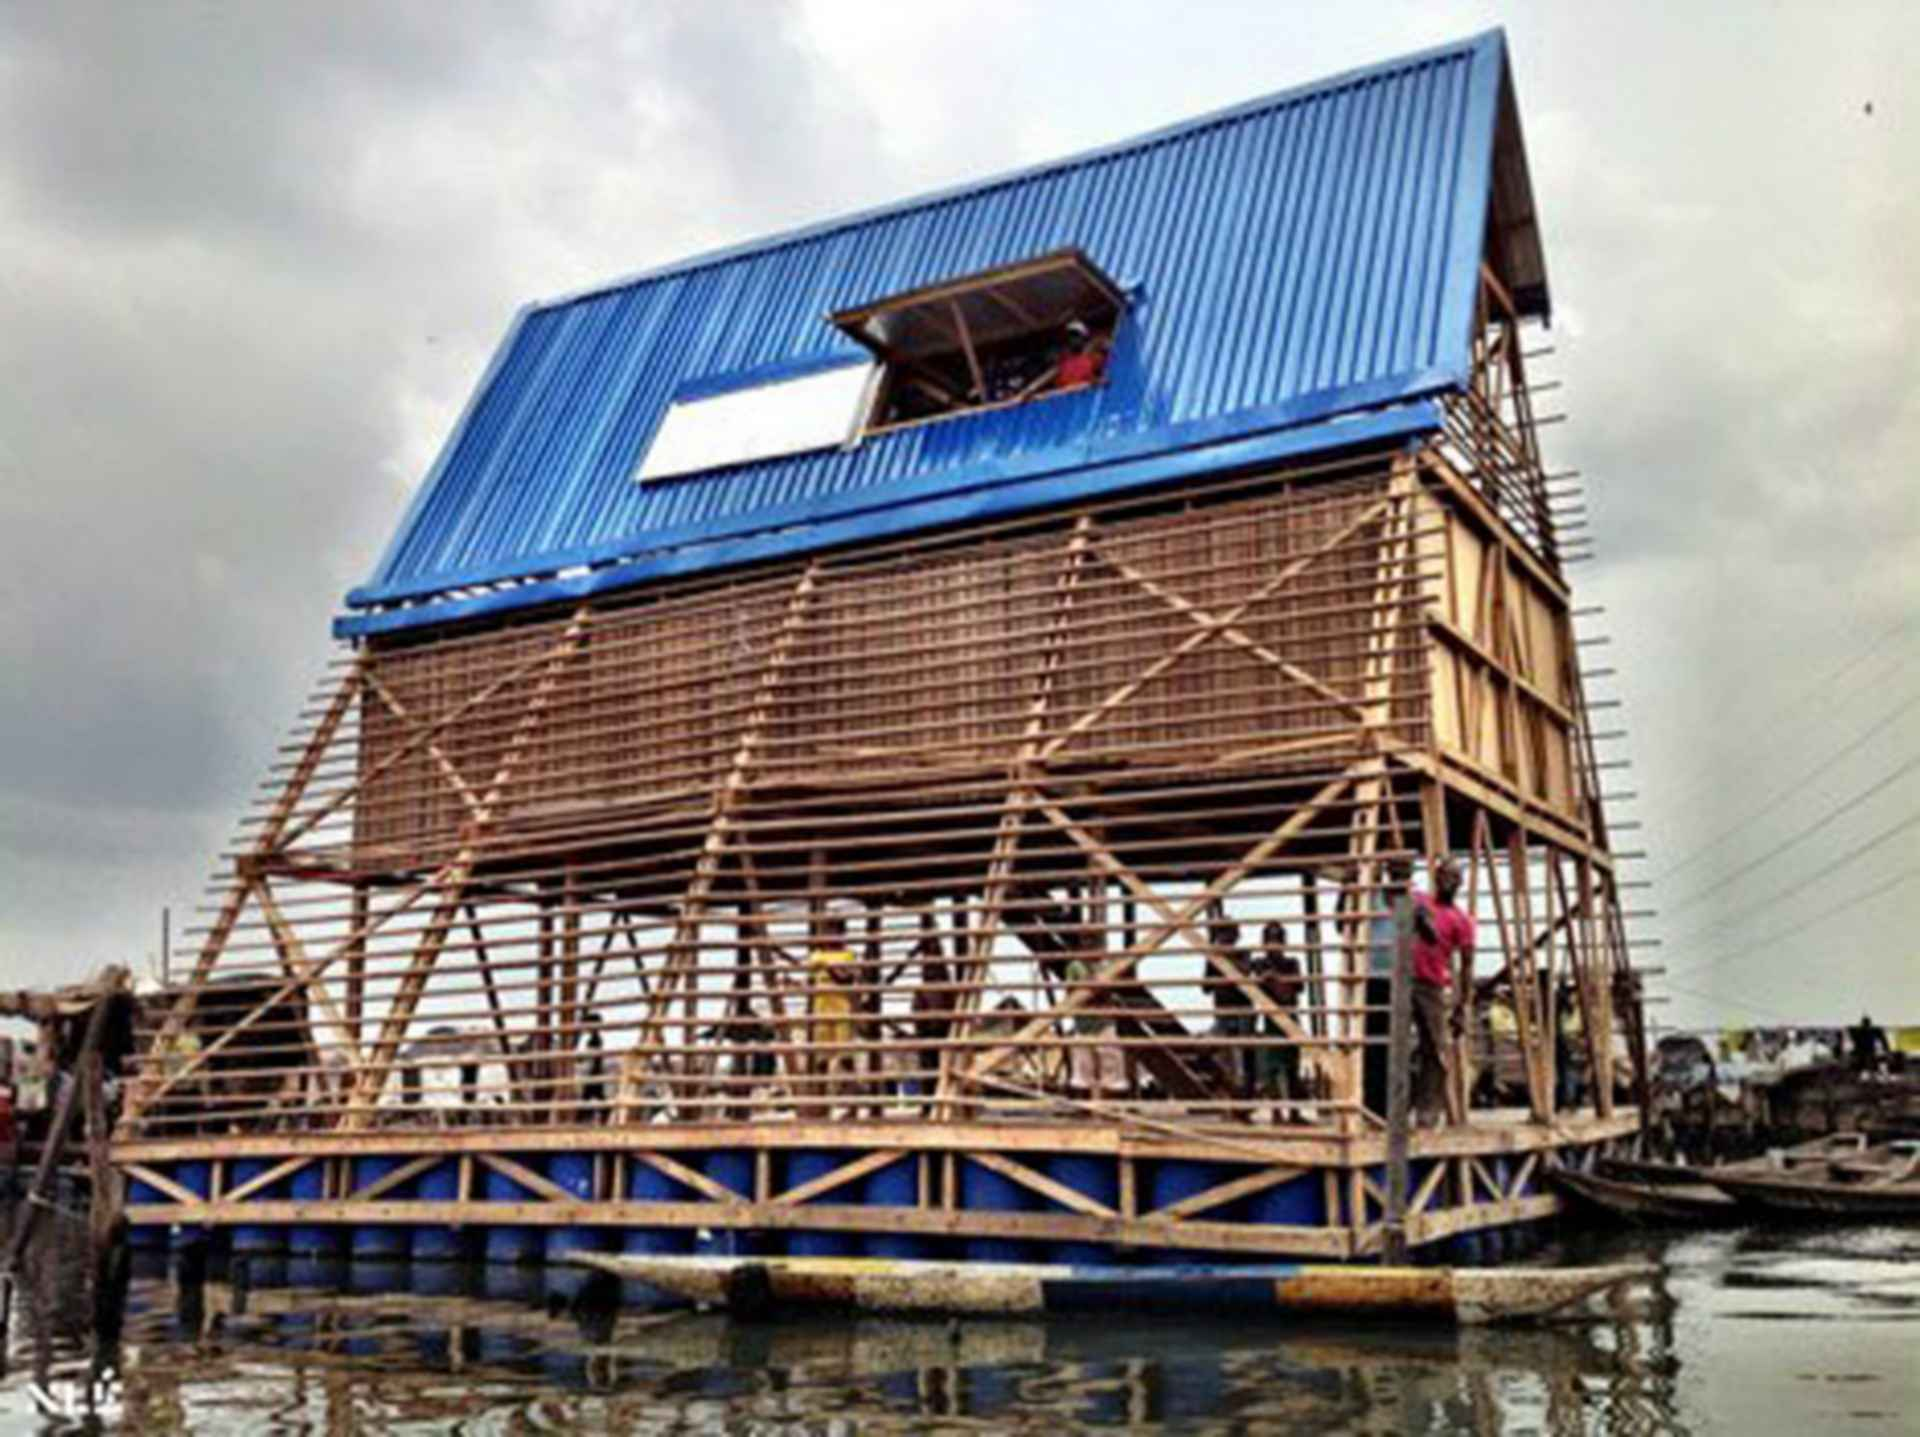 Makoko Floating School - exterior